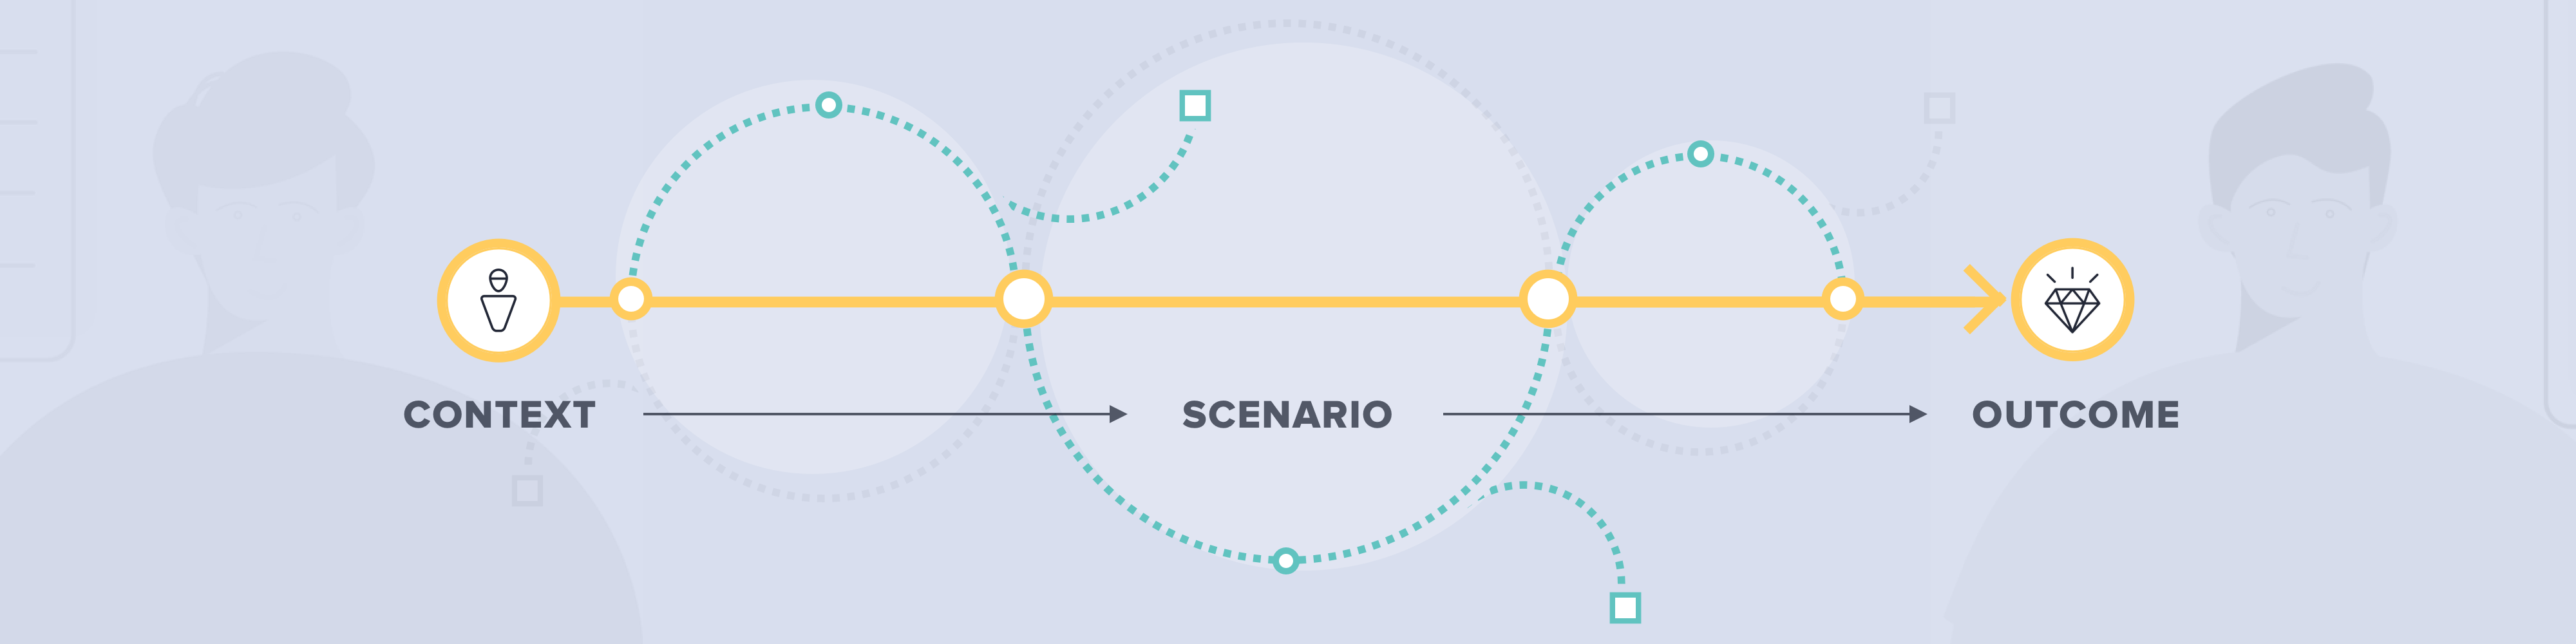 Header image — Line illustration depicting a journey from context (left), to scenario, to outcome (right)